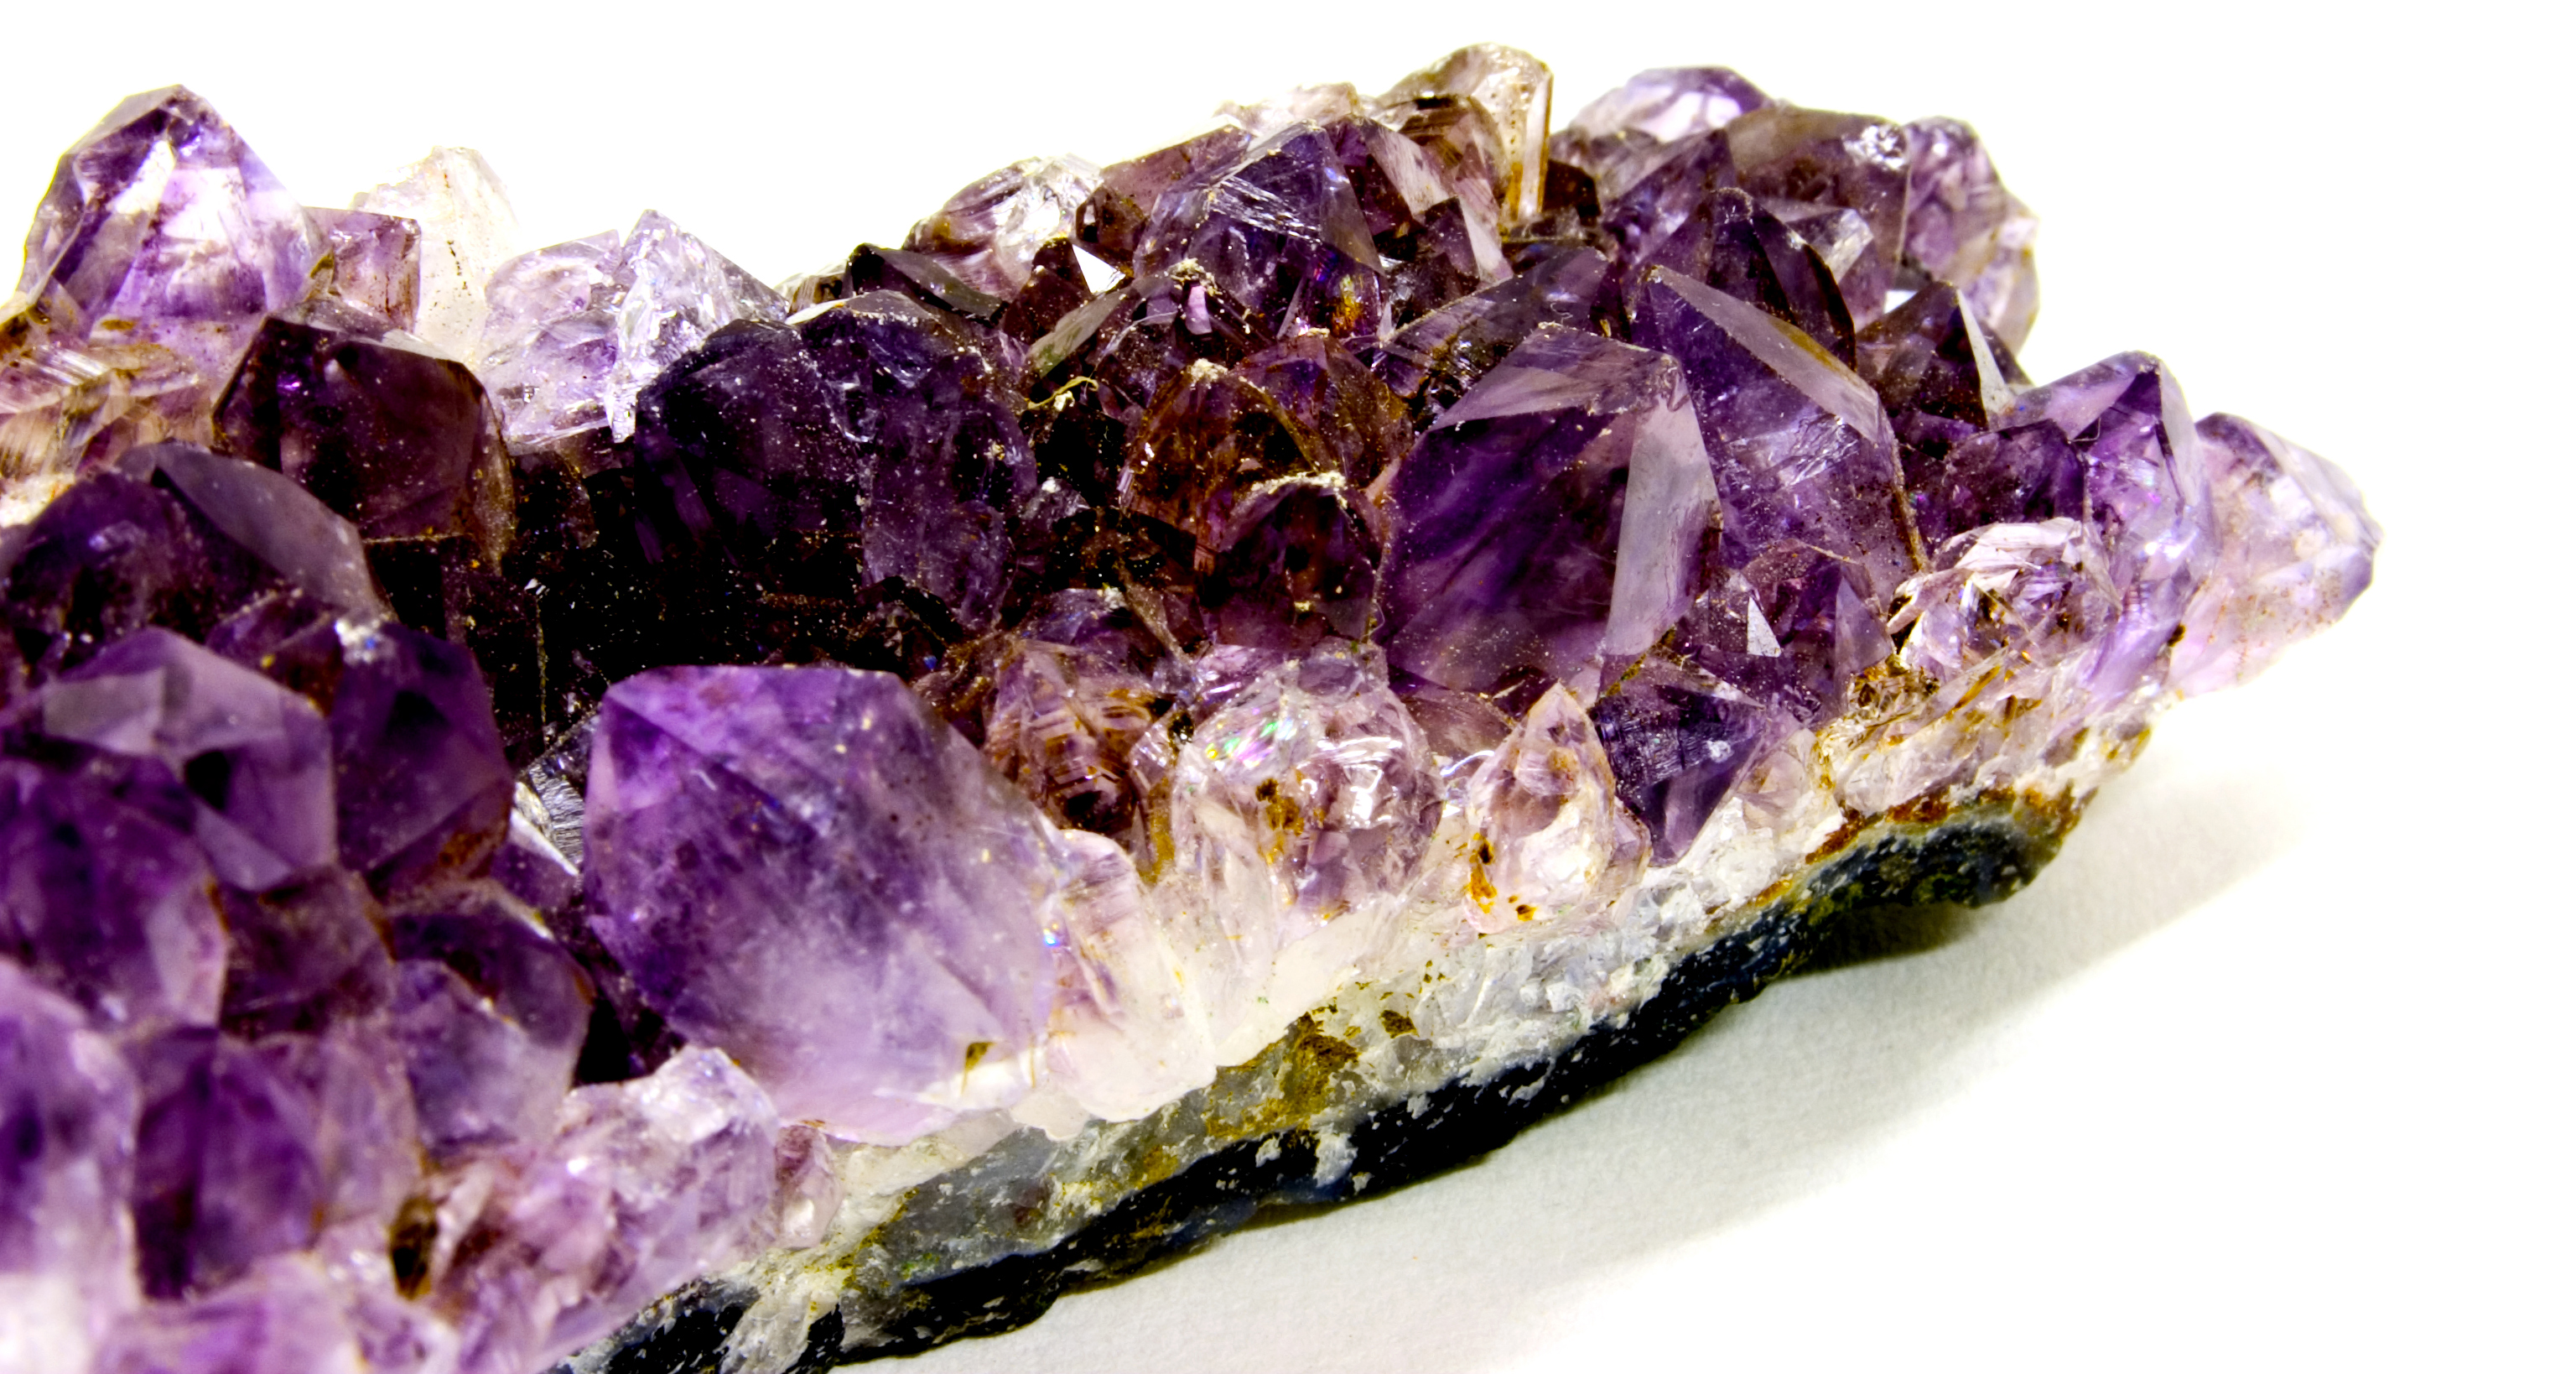 for customer gemstones colored care color purple caring guide investment tapper to advice expert your gemstone s